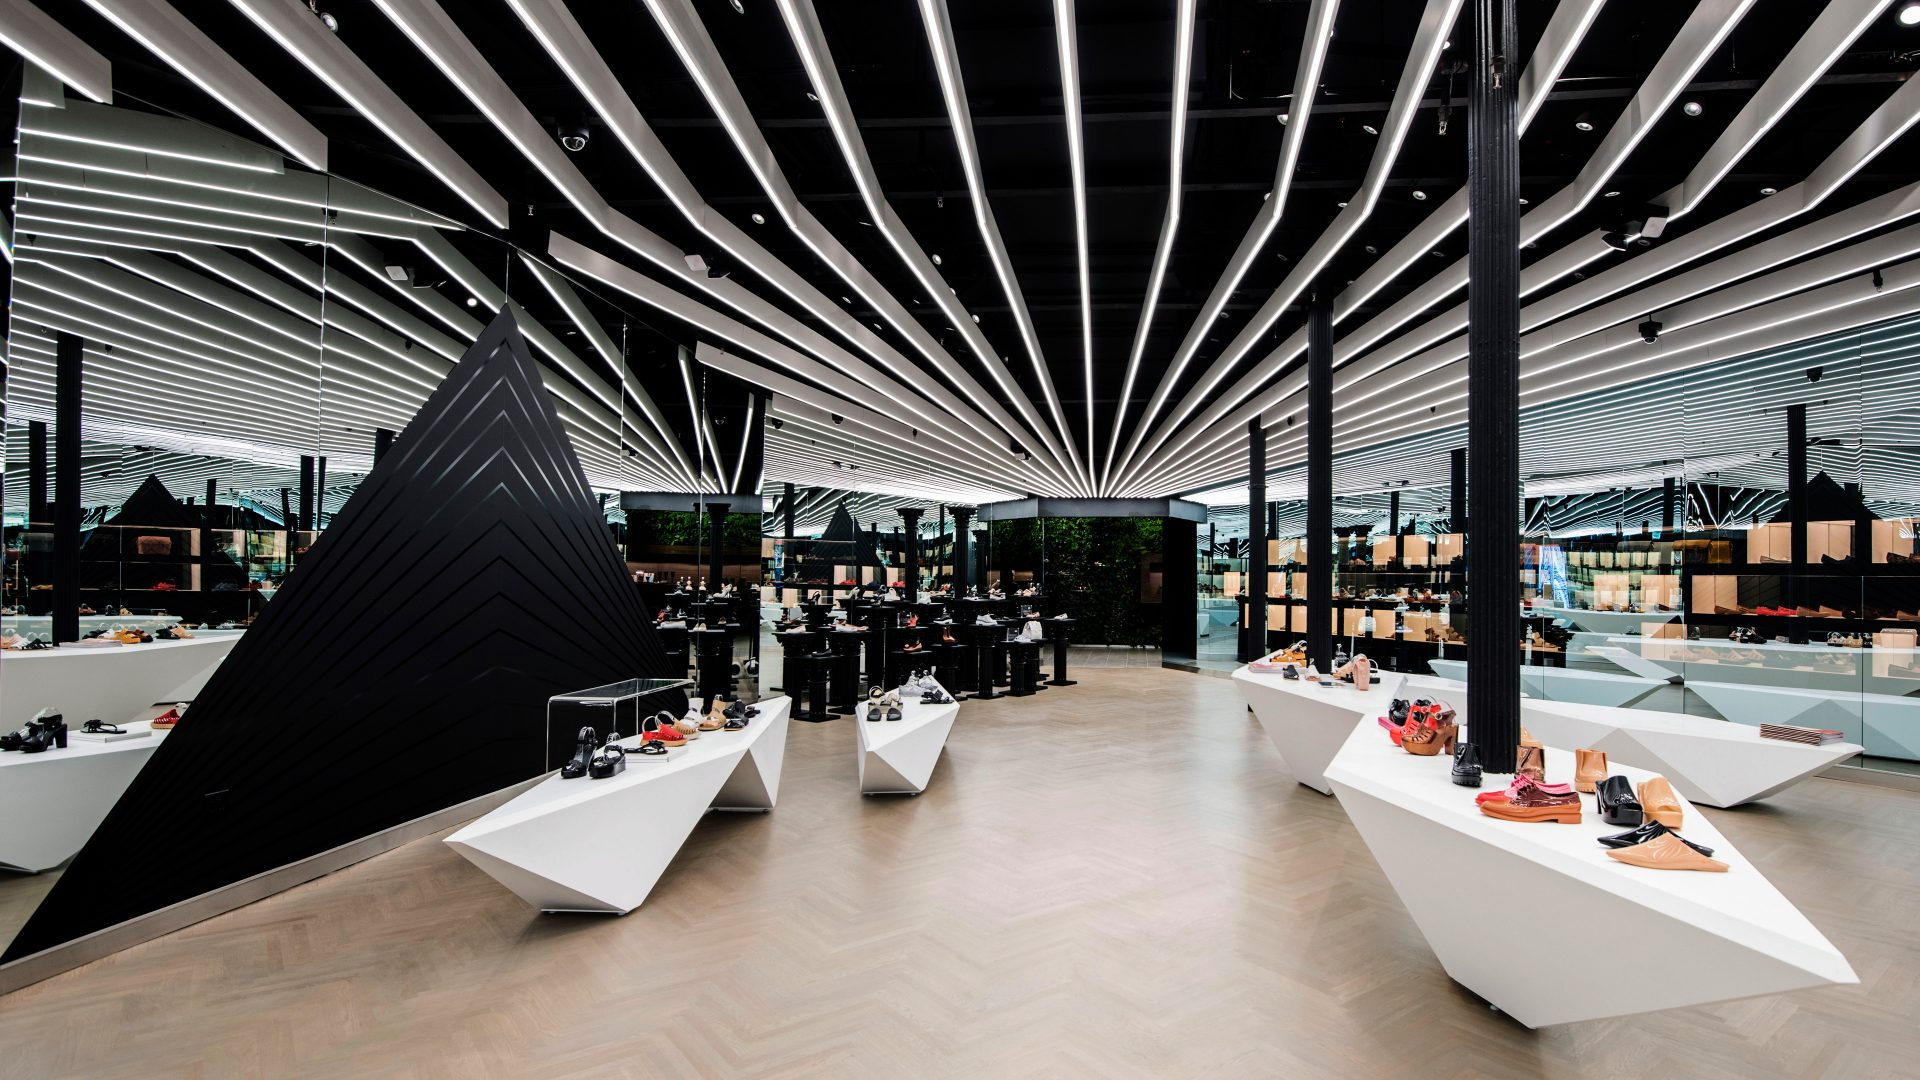 Product displays within the experiential retail space at Galeria Melissa